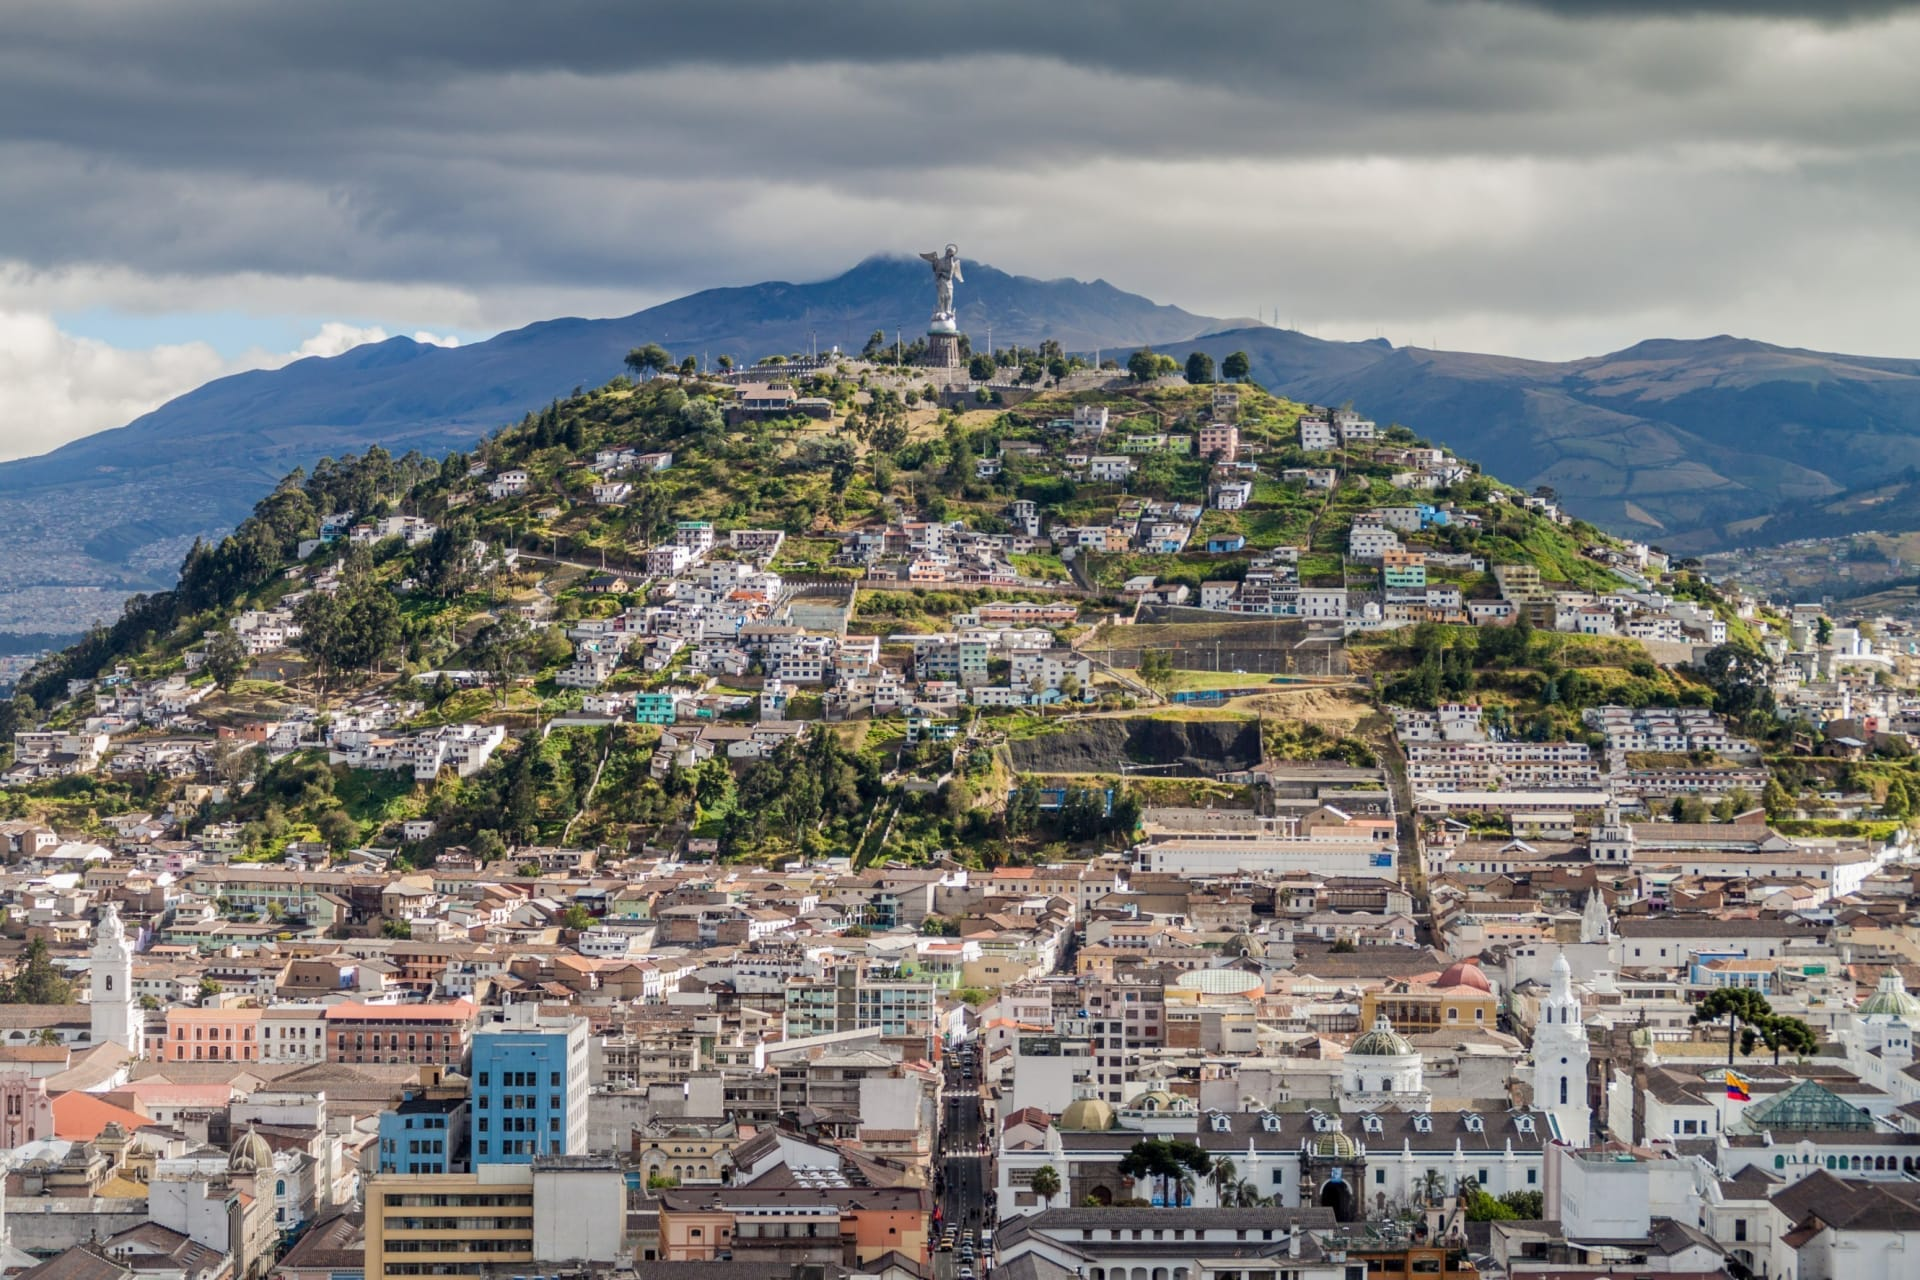 Quito - Meet the Virgin with wings of 41 meters high Quito-Panecillo Mountain